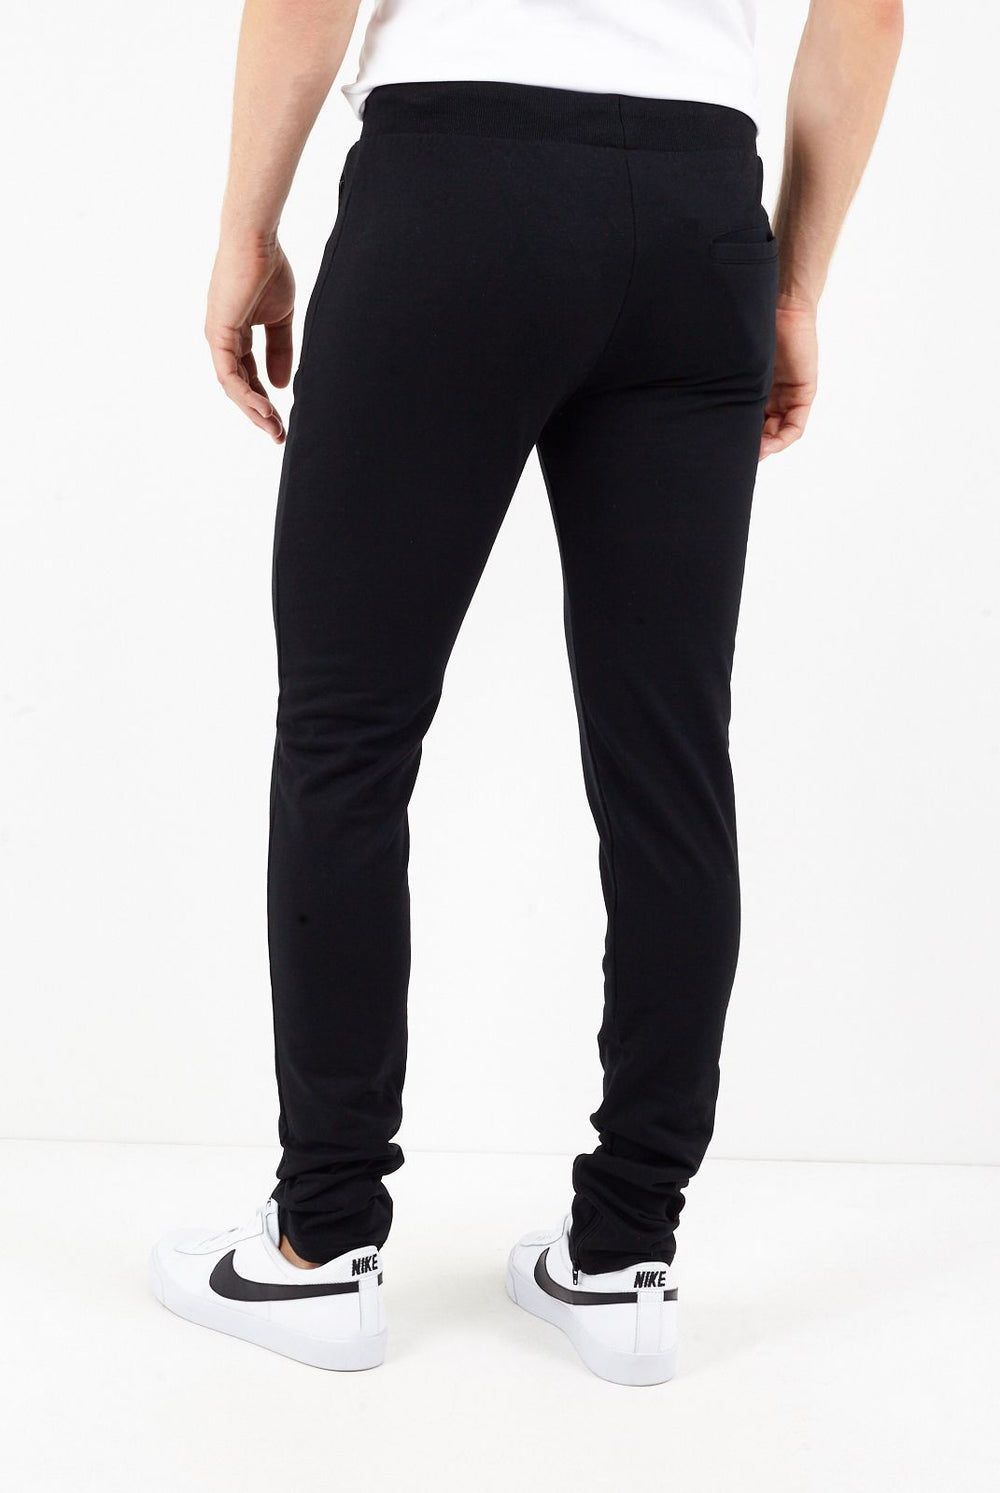 Jersey - Skinny Track Bottoms Black